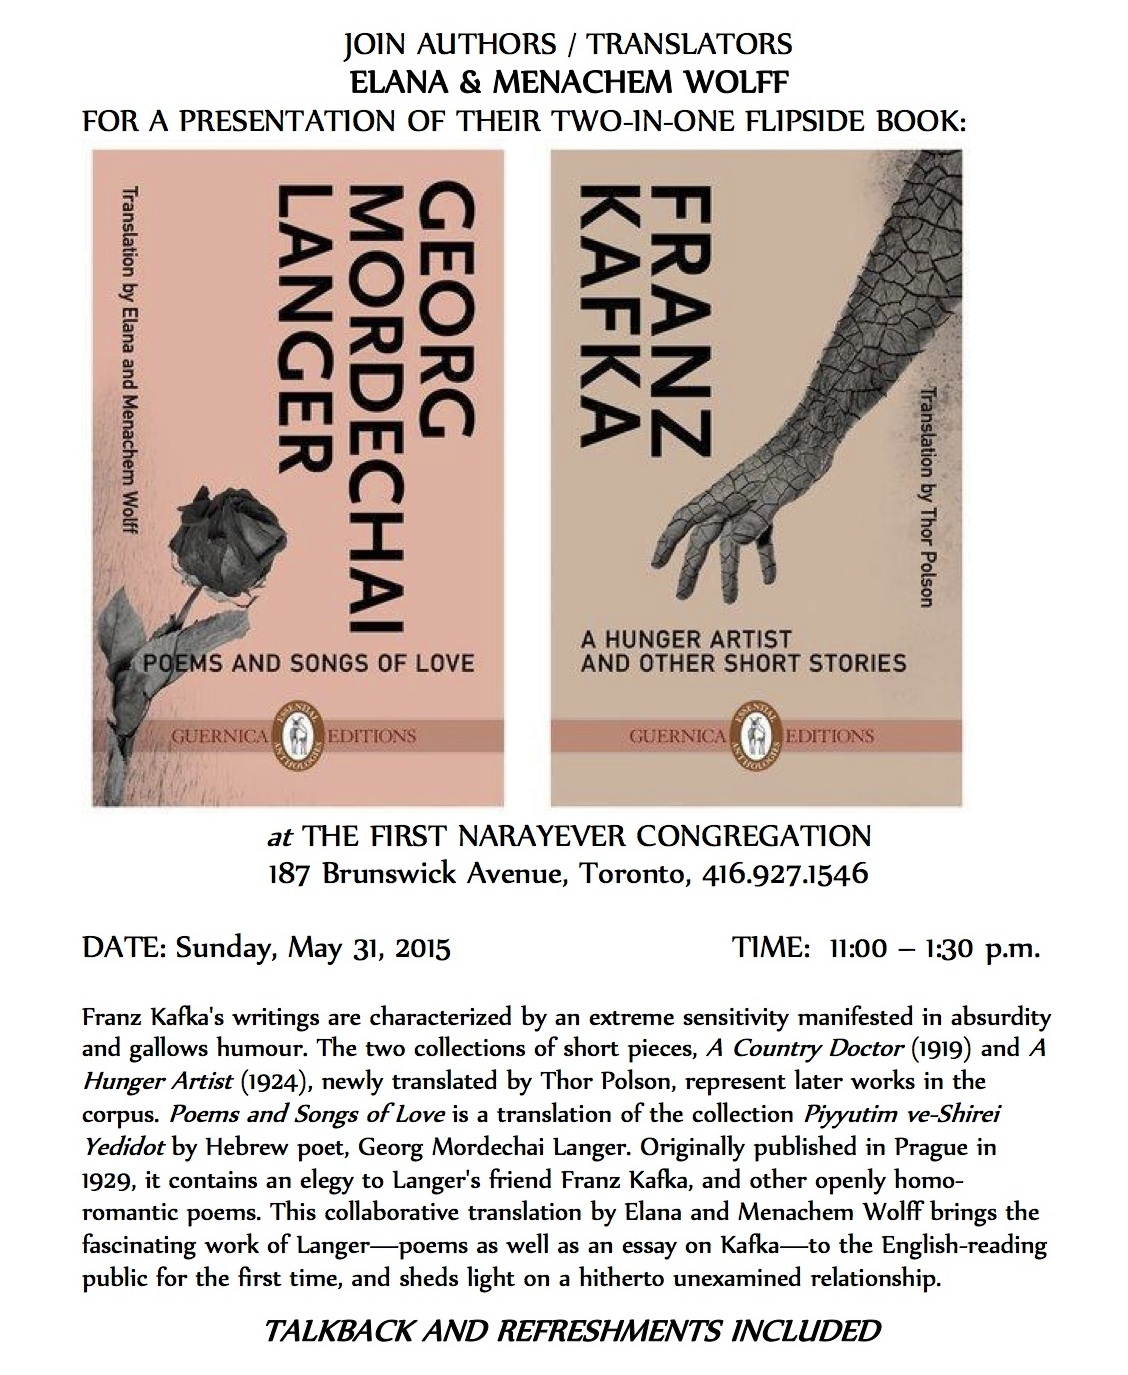 Coming up in Toronto on May 31: Presentation by Elana